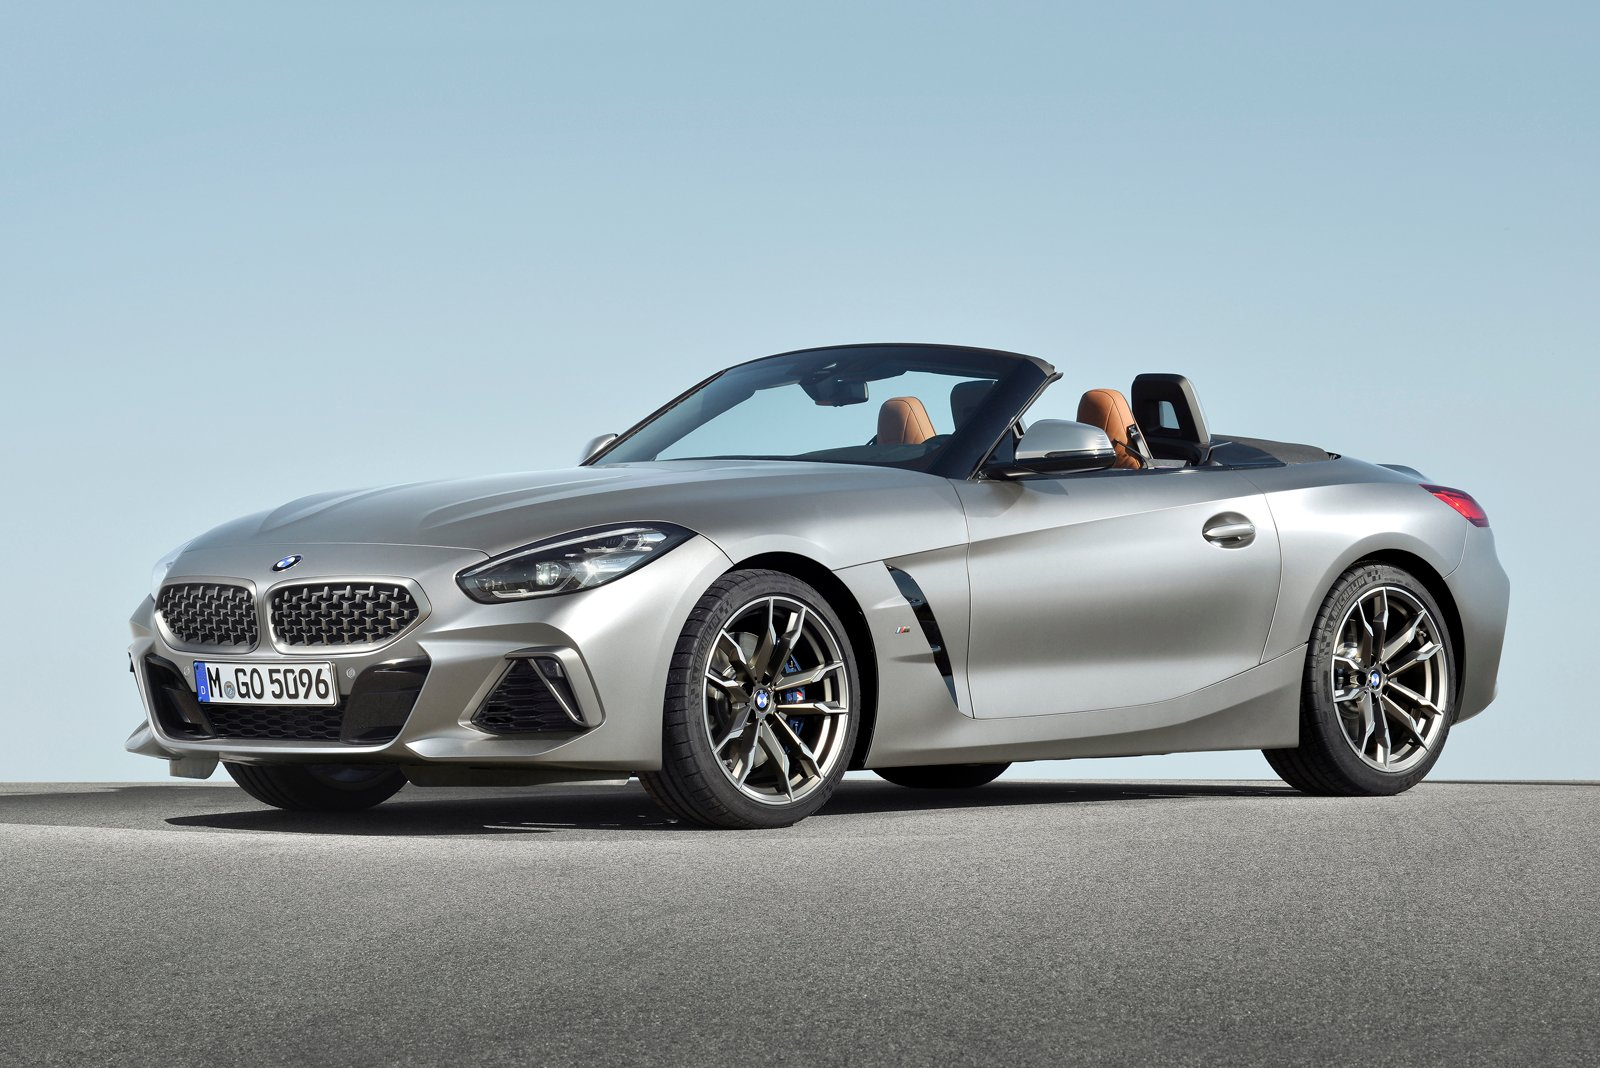 Us Bmw Z4 M40i Gets 40 More Hp Than European Model Quicker 0 60